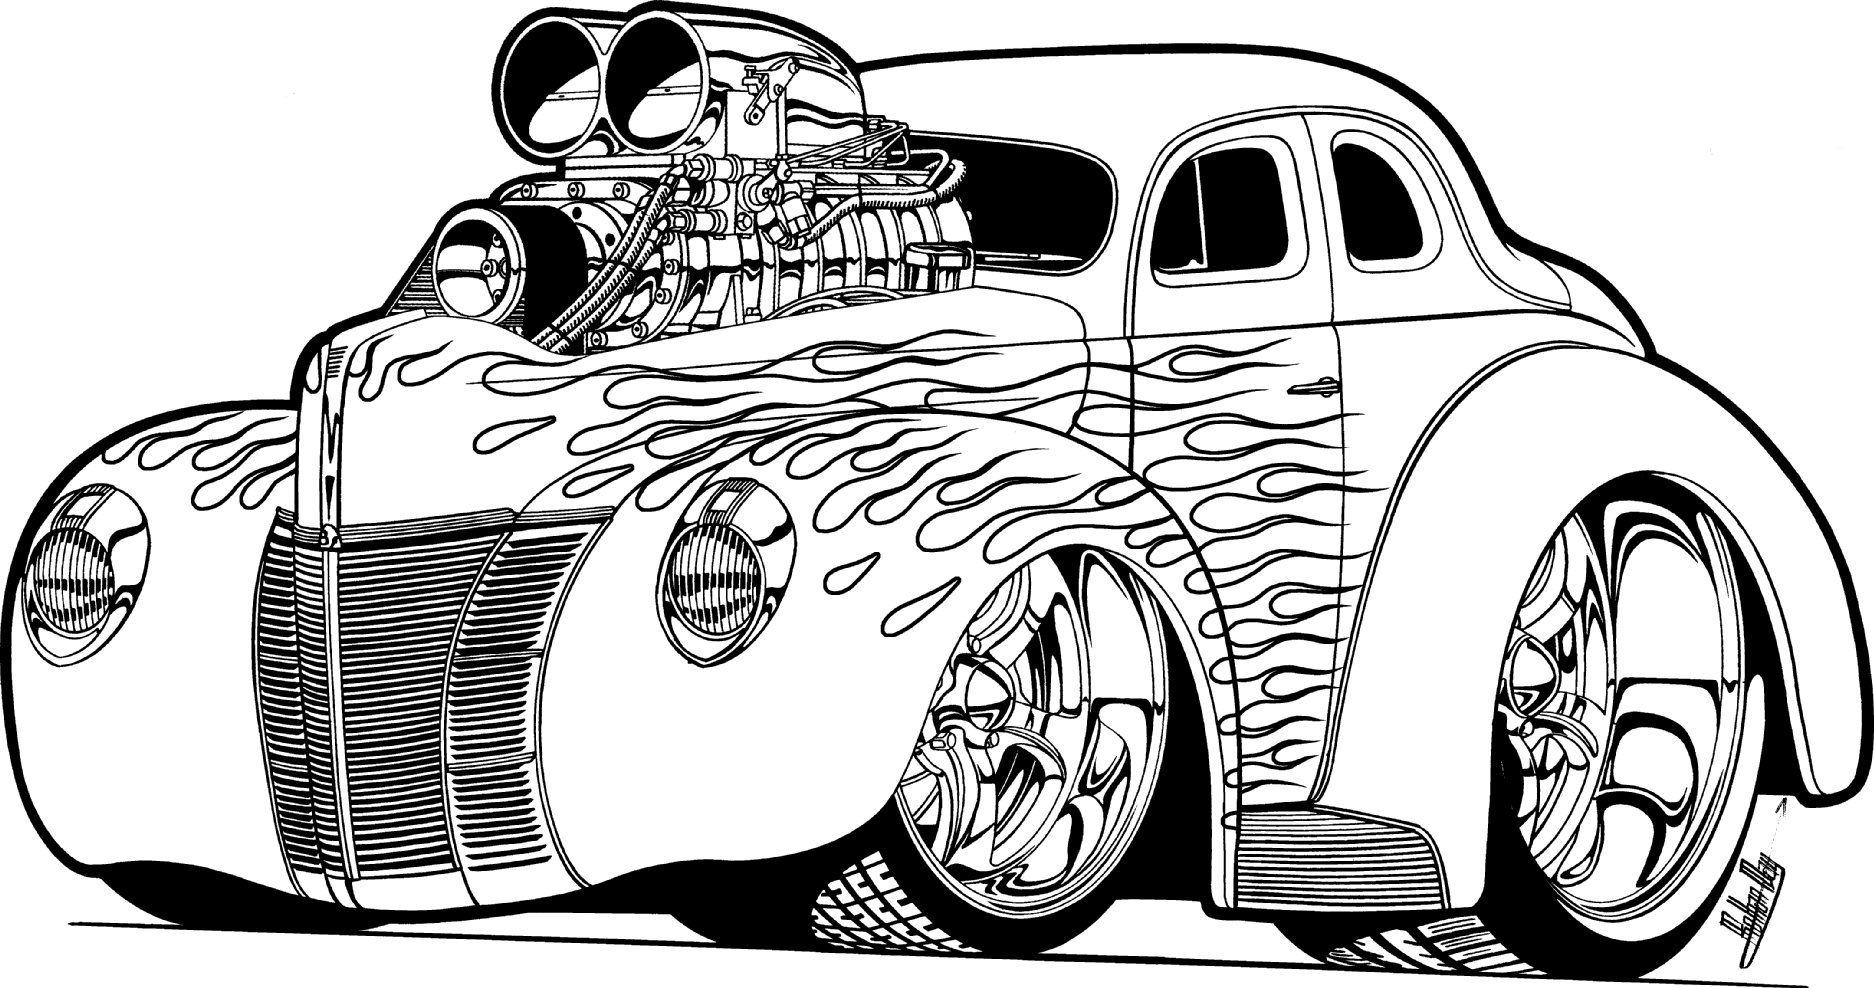 Colouring Jpg 1874 988 Race Car Coloring Pages Cars Coloring Pages Truck Coloring Pages